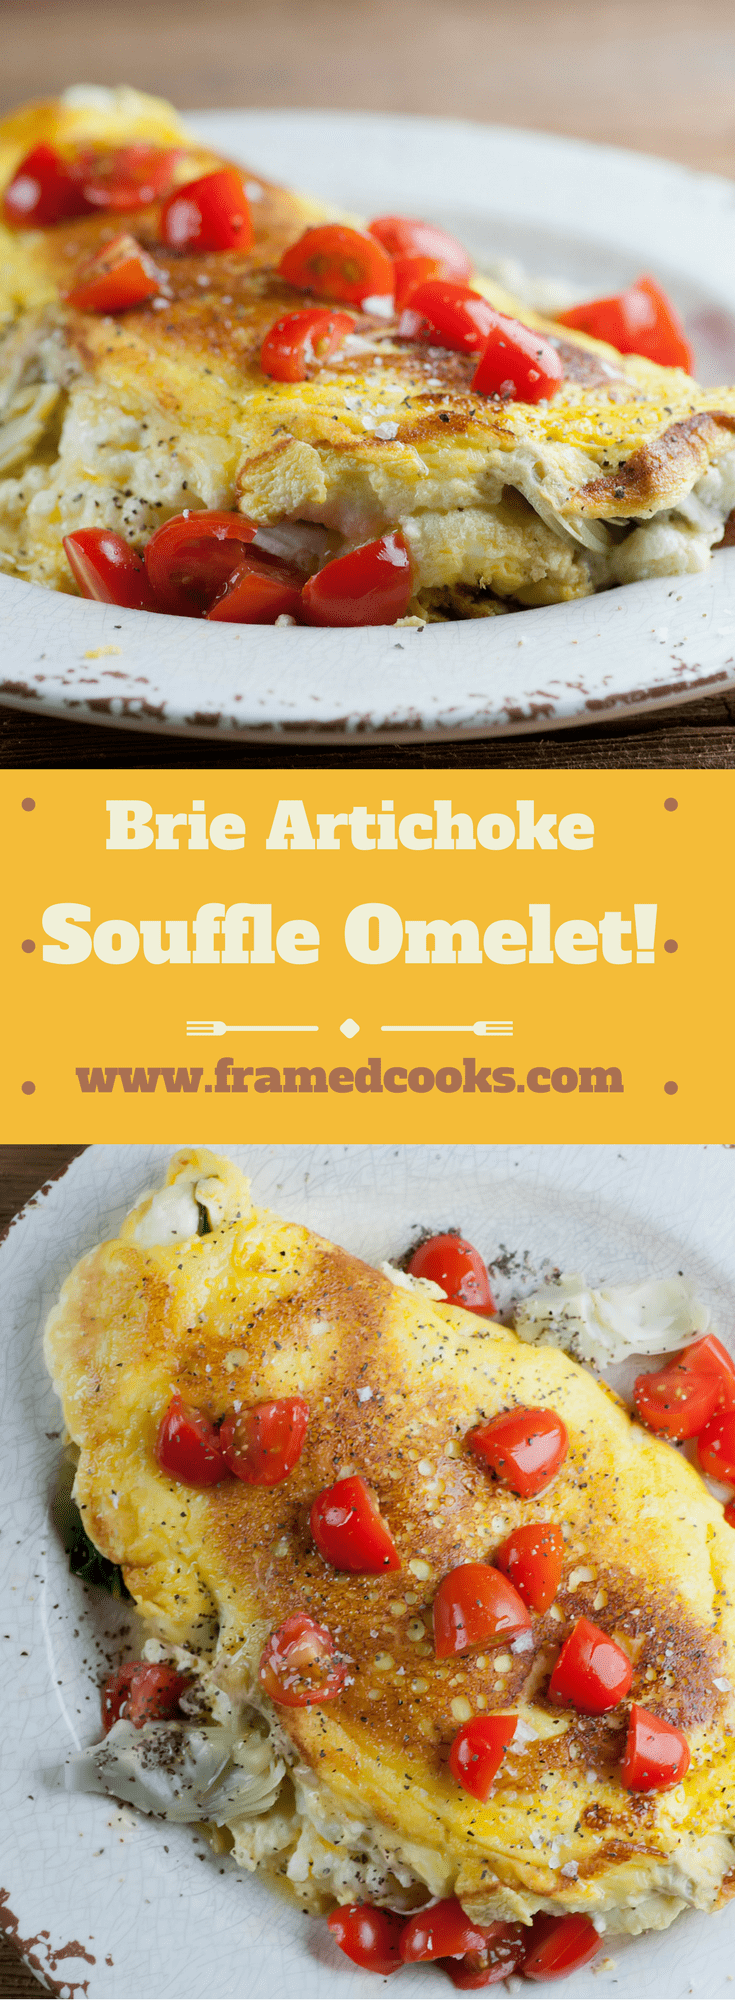 Wow them for breakfast with this easy and decadent recipe for a Brie artichoke souffle omelet!  Full of cheese and simple to make on your stovetop.